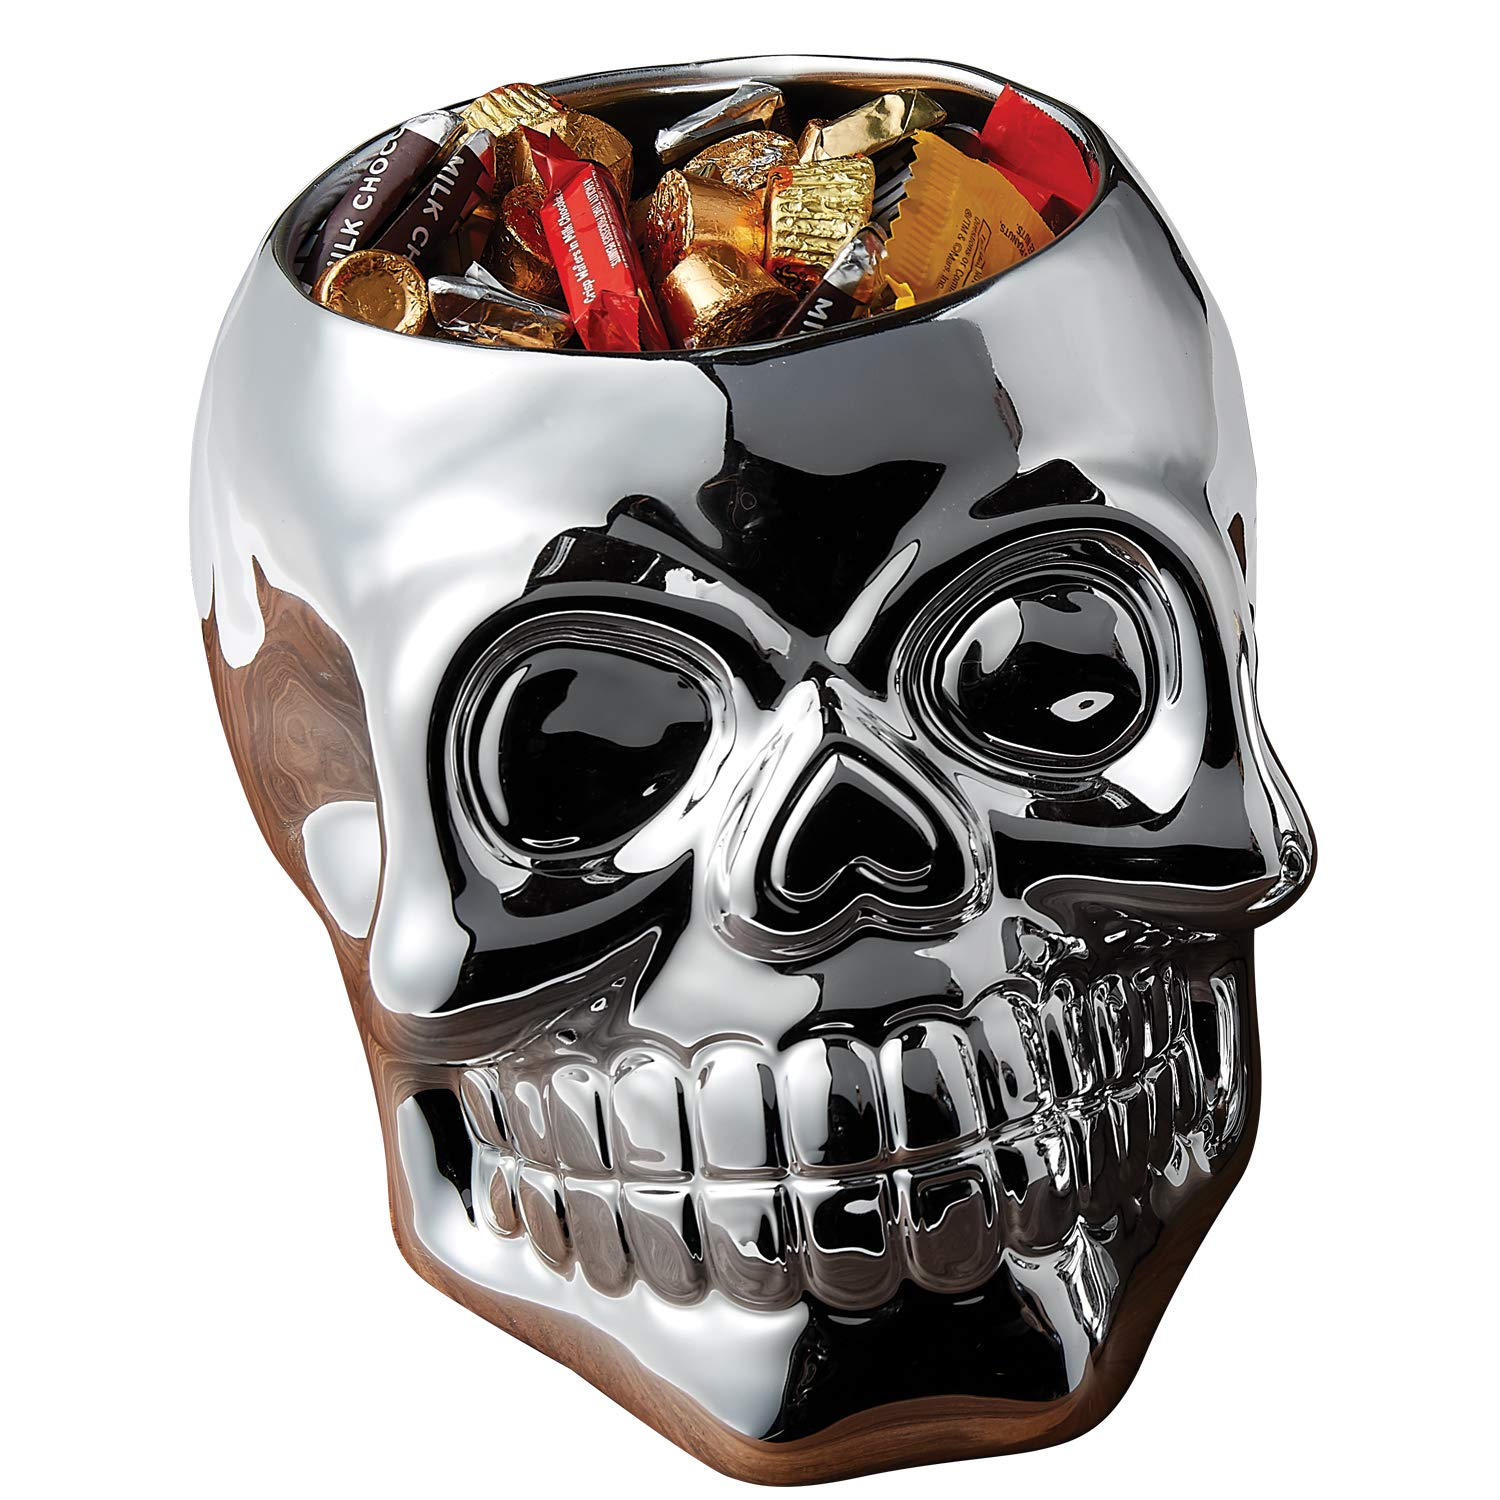 Silvertone Mirror Skull Shaped Large 6.5 x 7.5 Inch Earthenware Candy Bowl